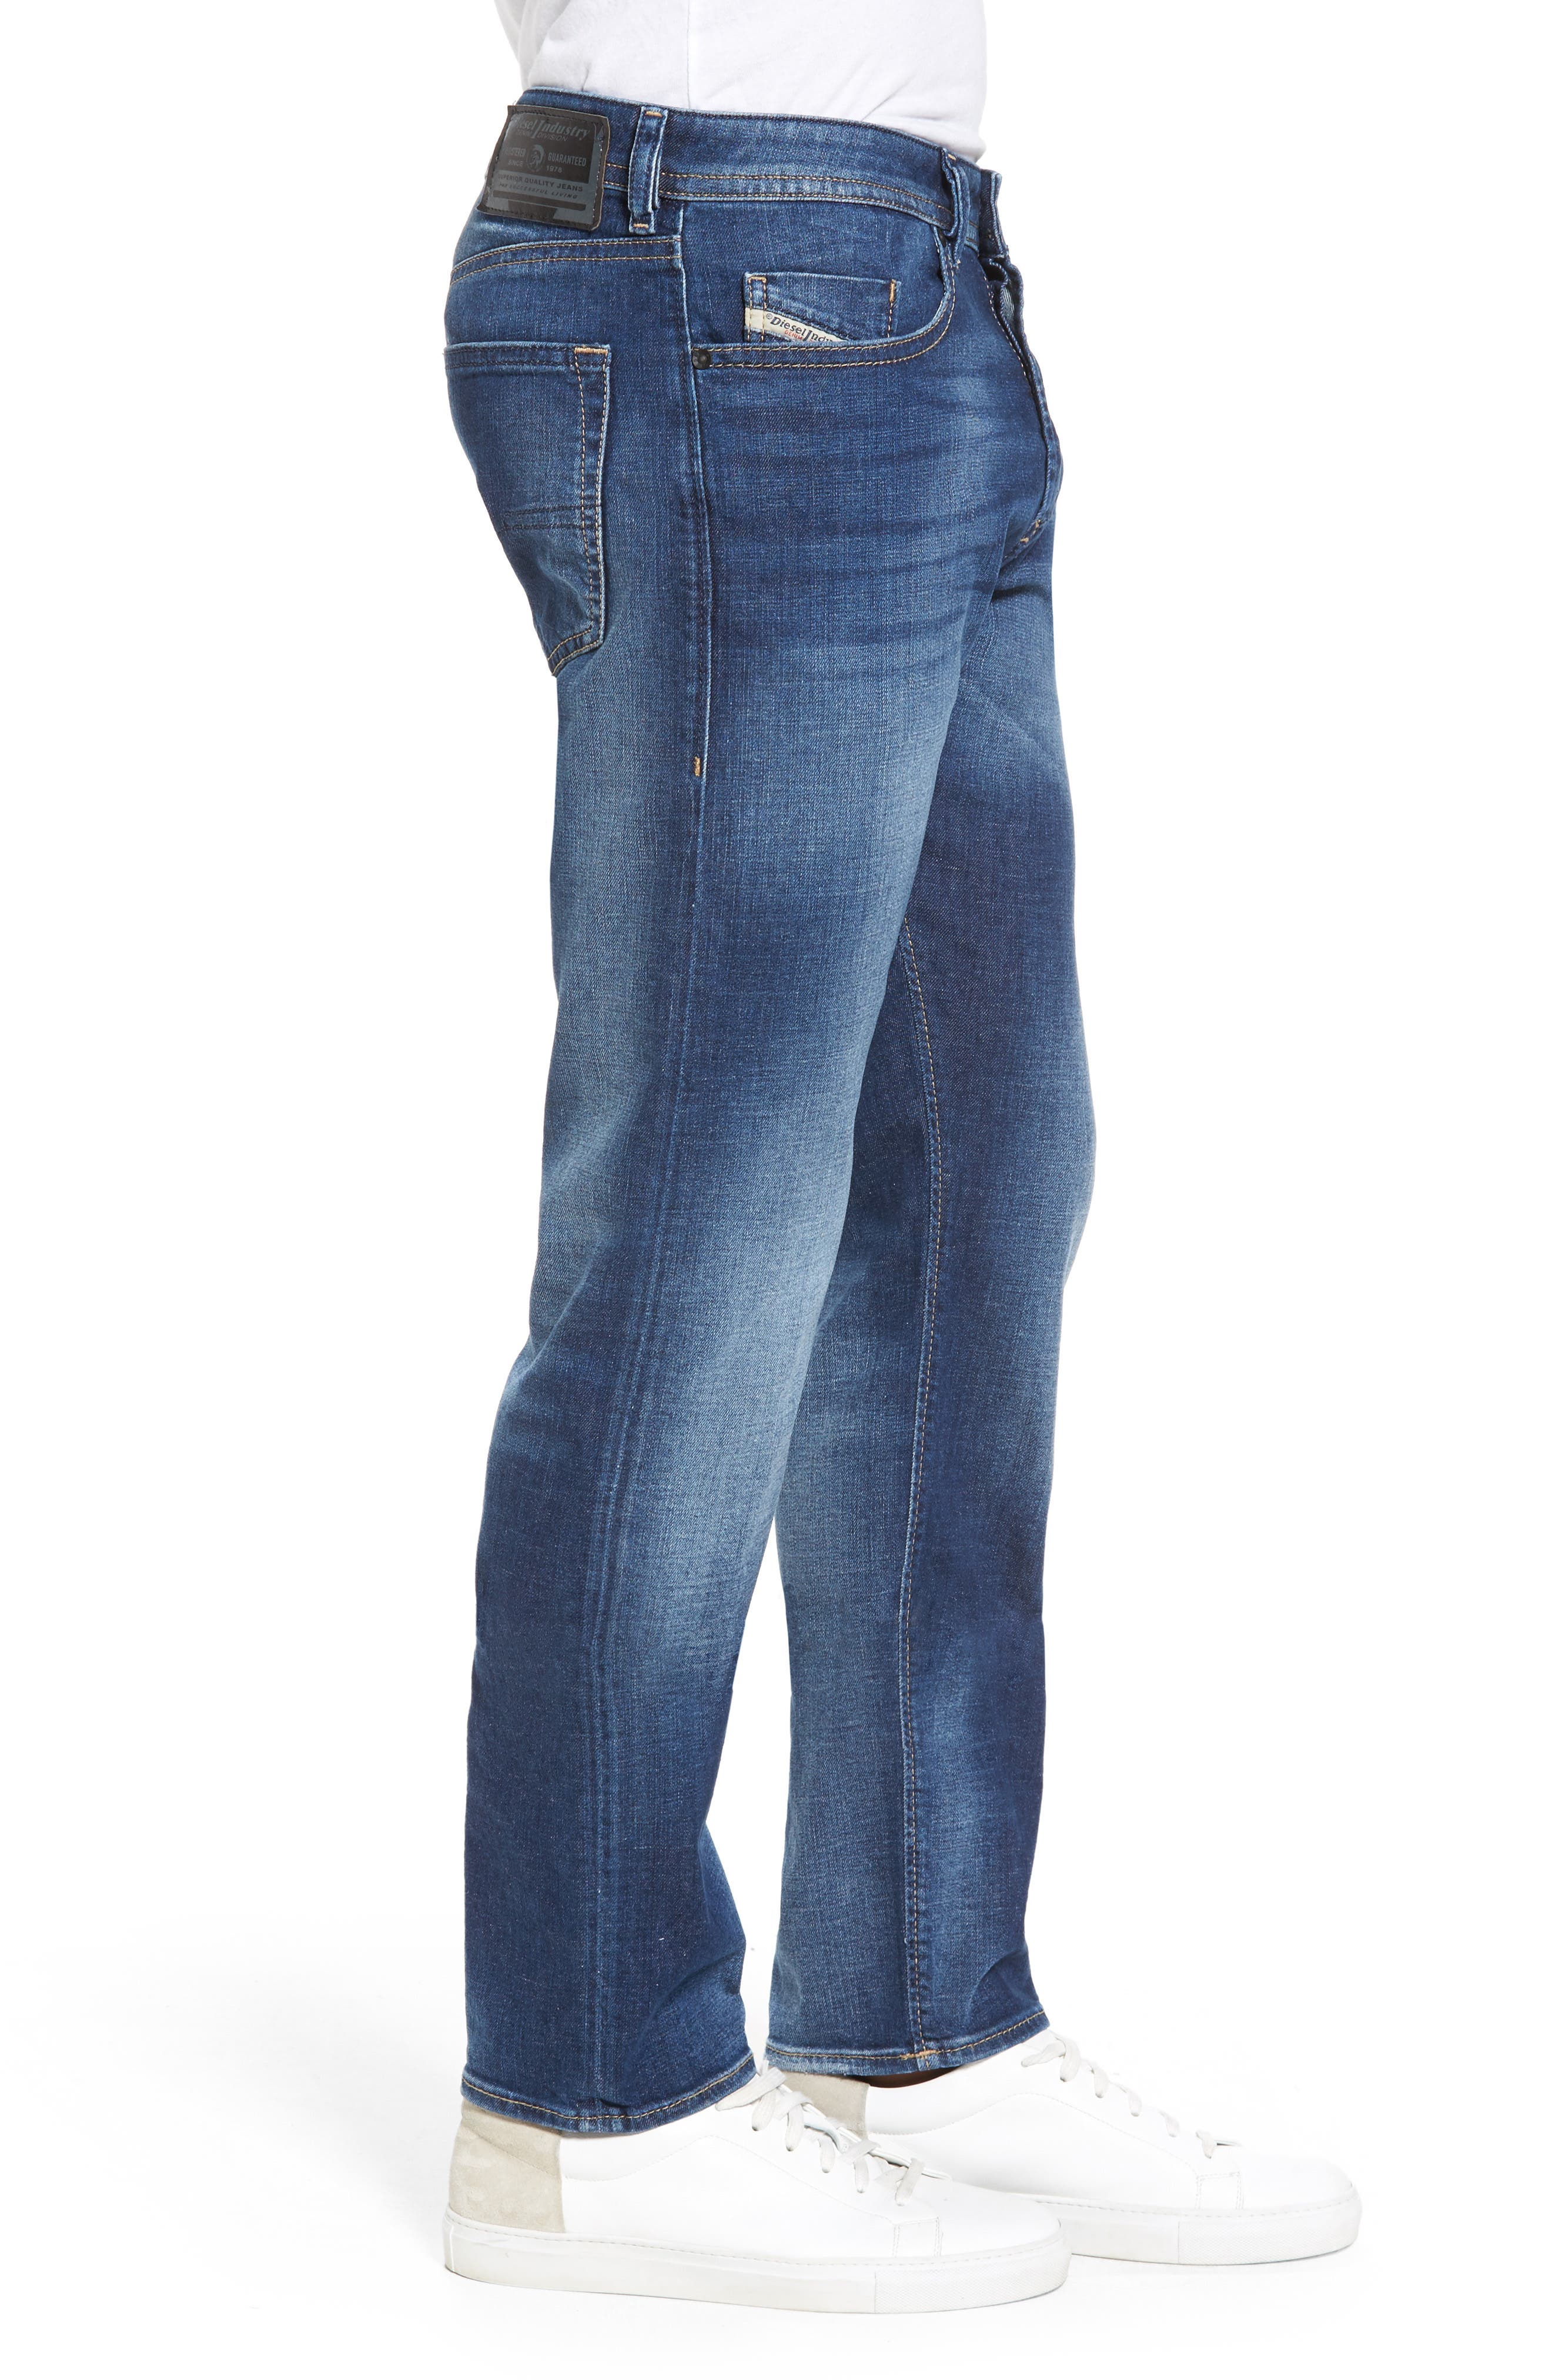 Buster Slim Straight Leg Jeans,                             Alternate thumbnail 3, color,                             084Gr